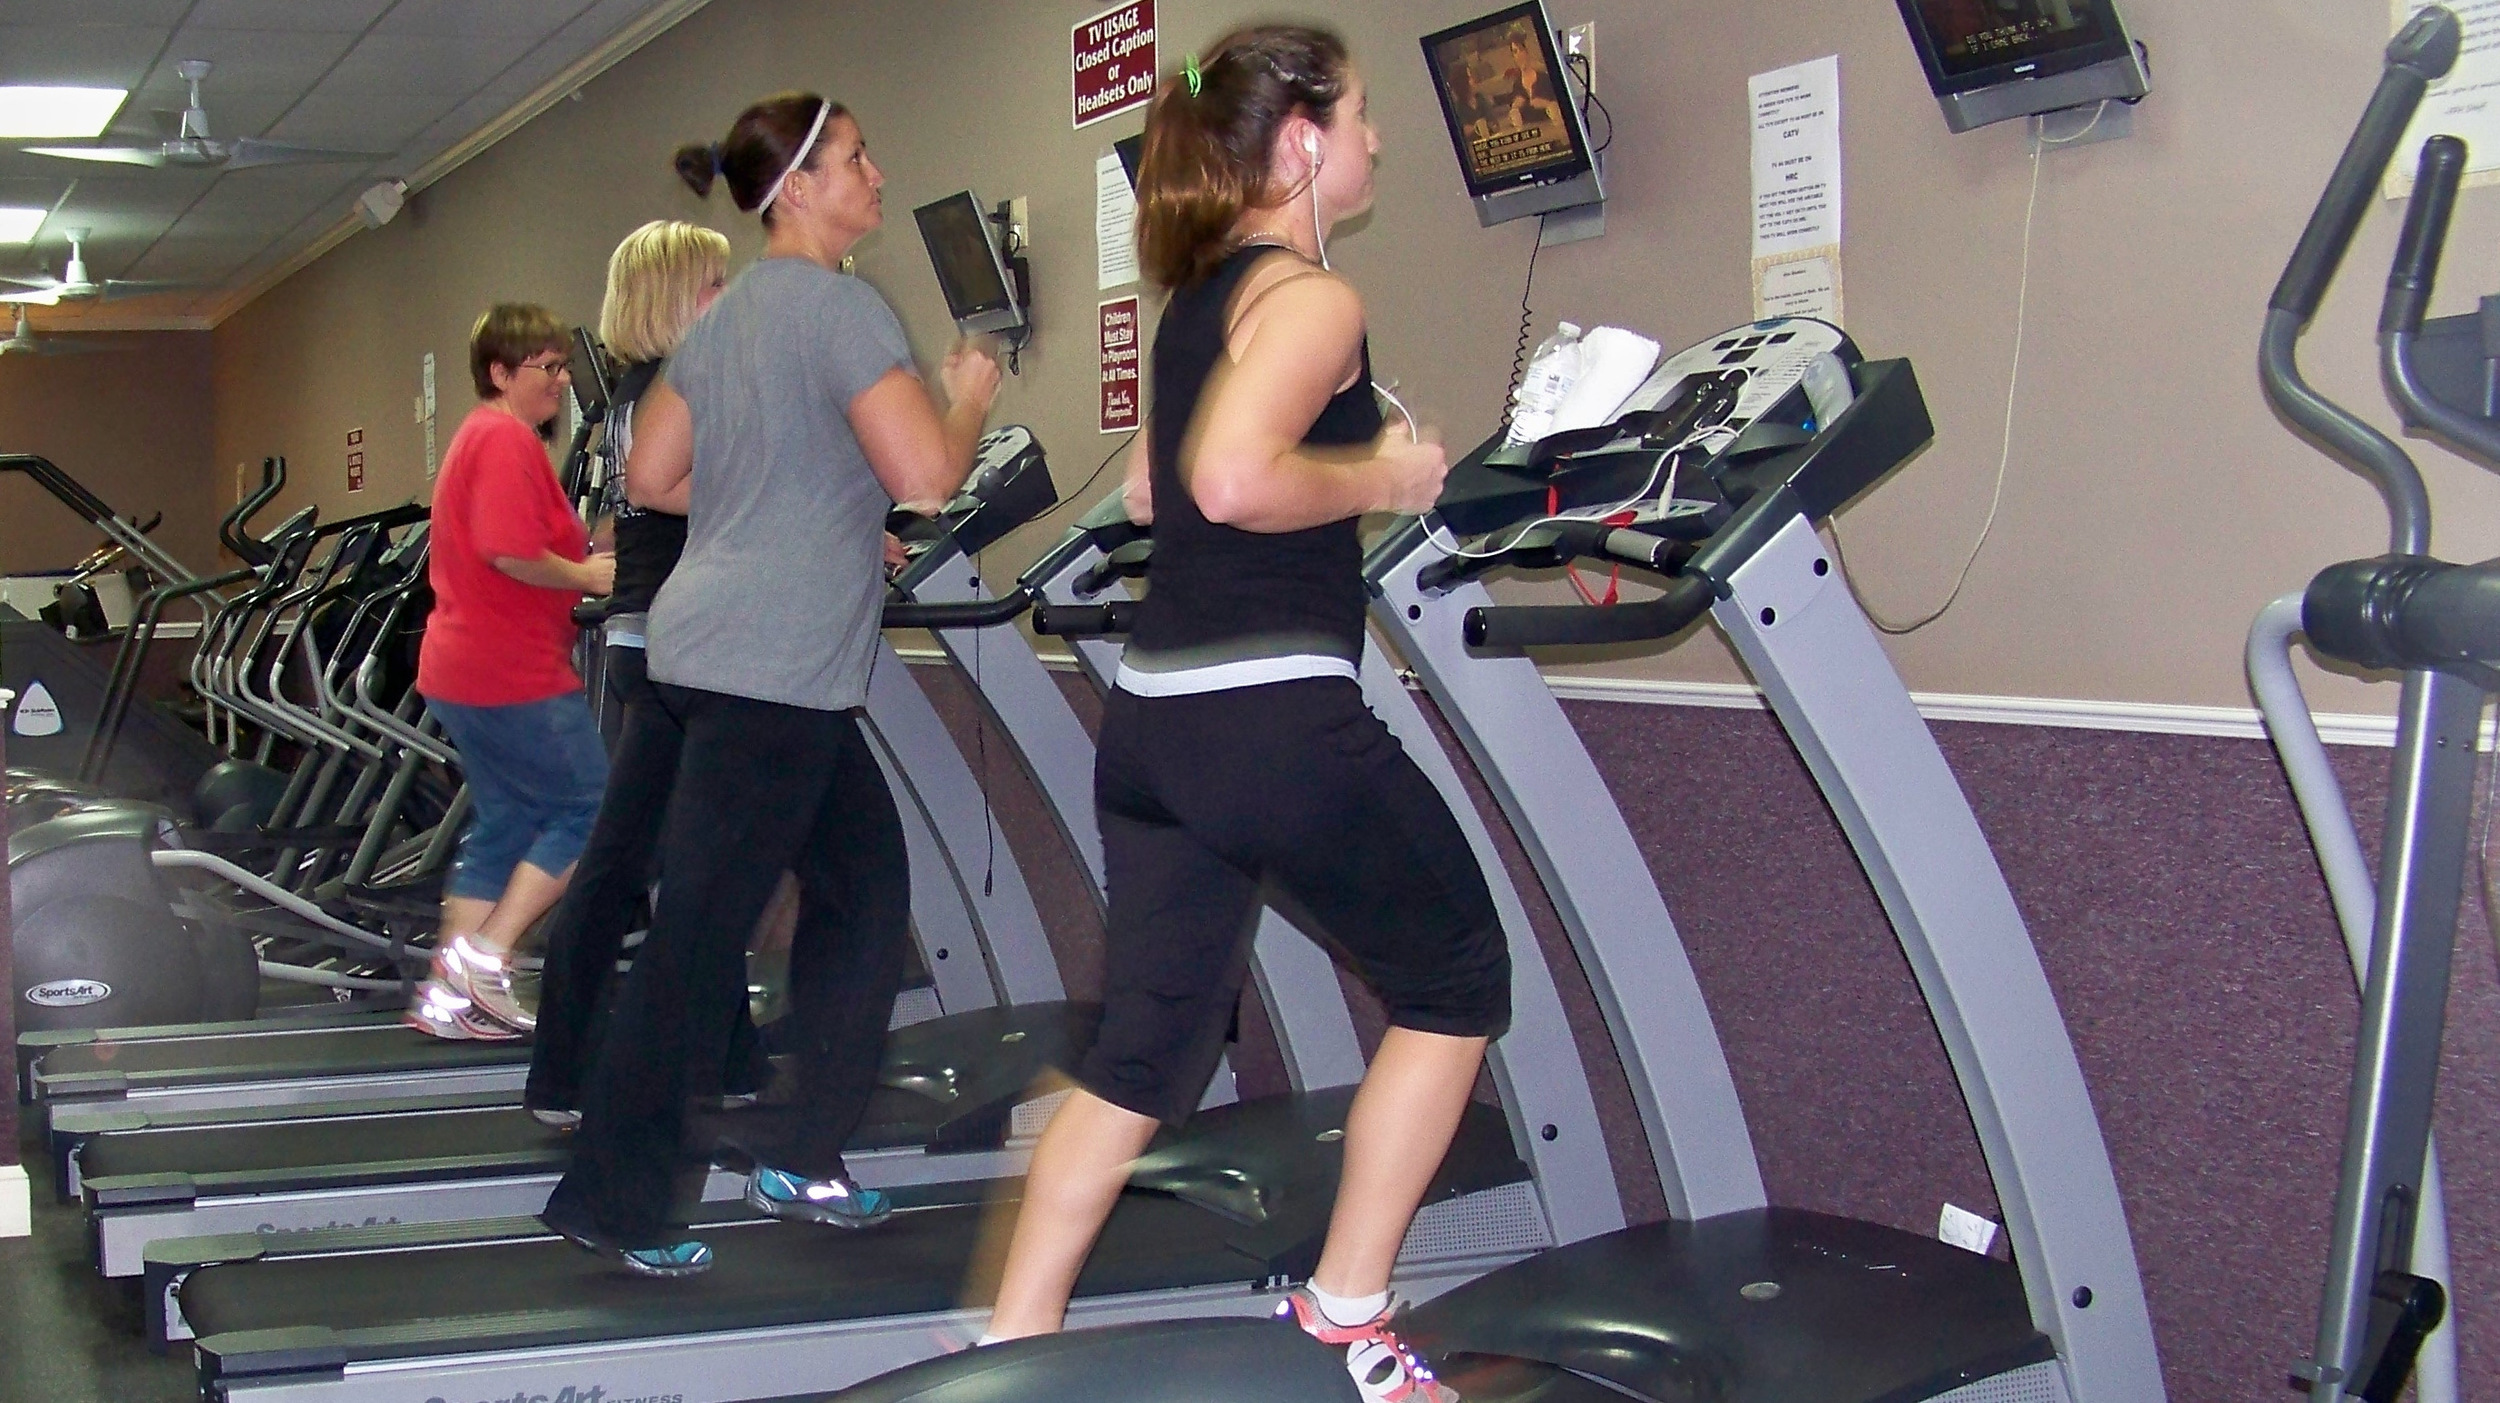 Women's Fitness Training at Fit For Her Okc | Oklahoma City | 24-Hour Womens Fitness Gym